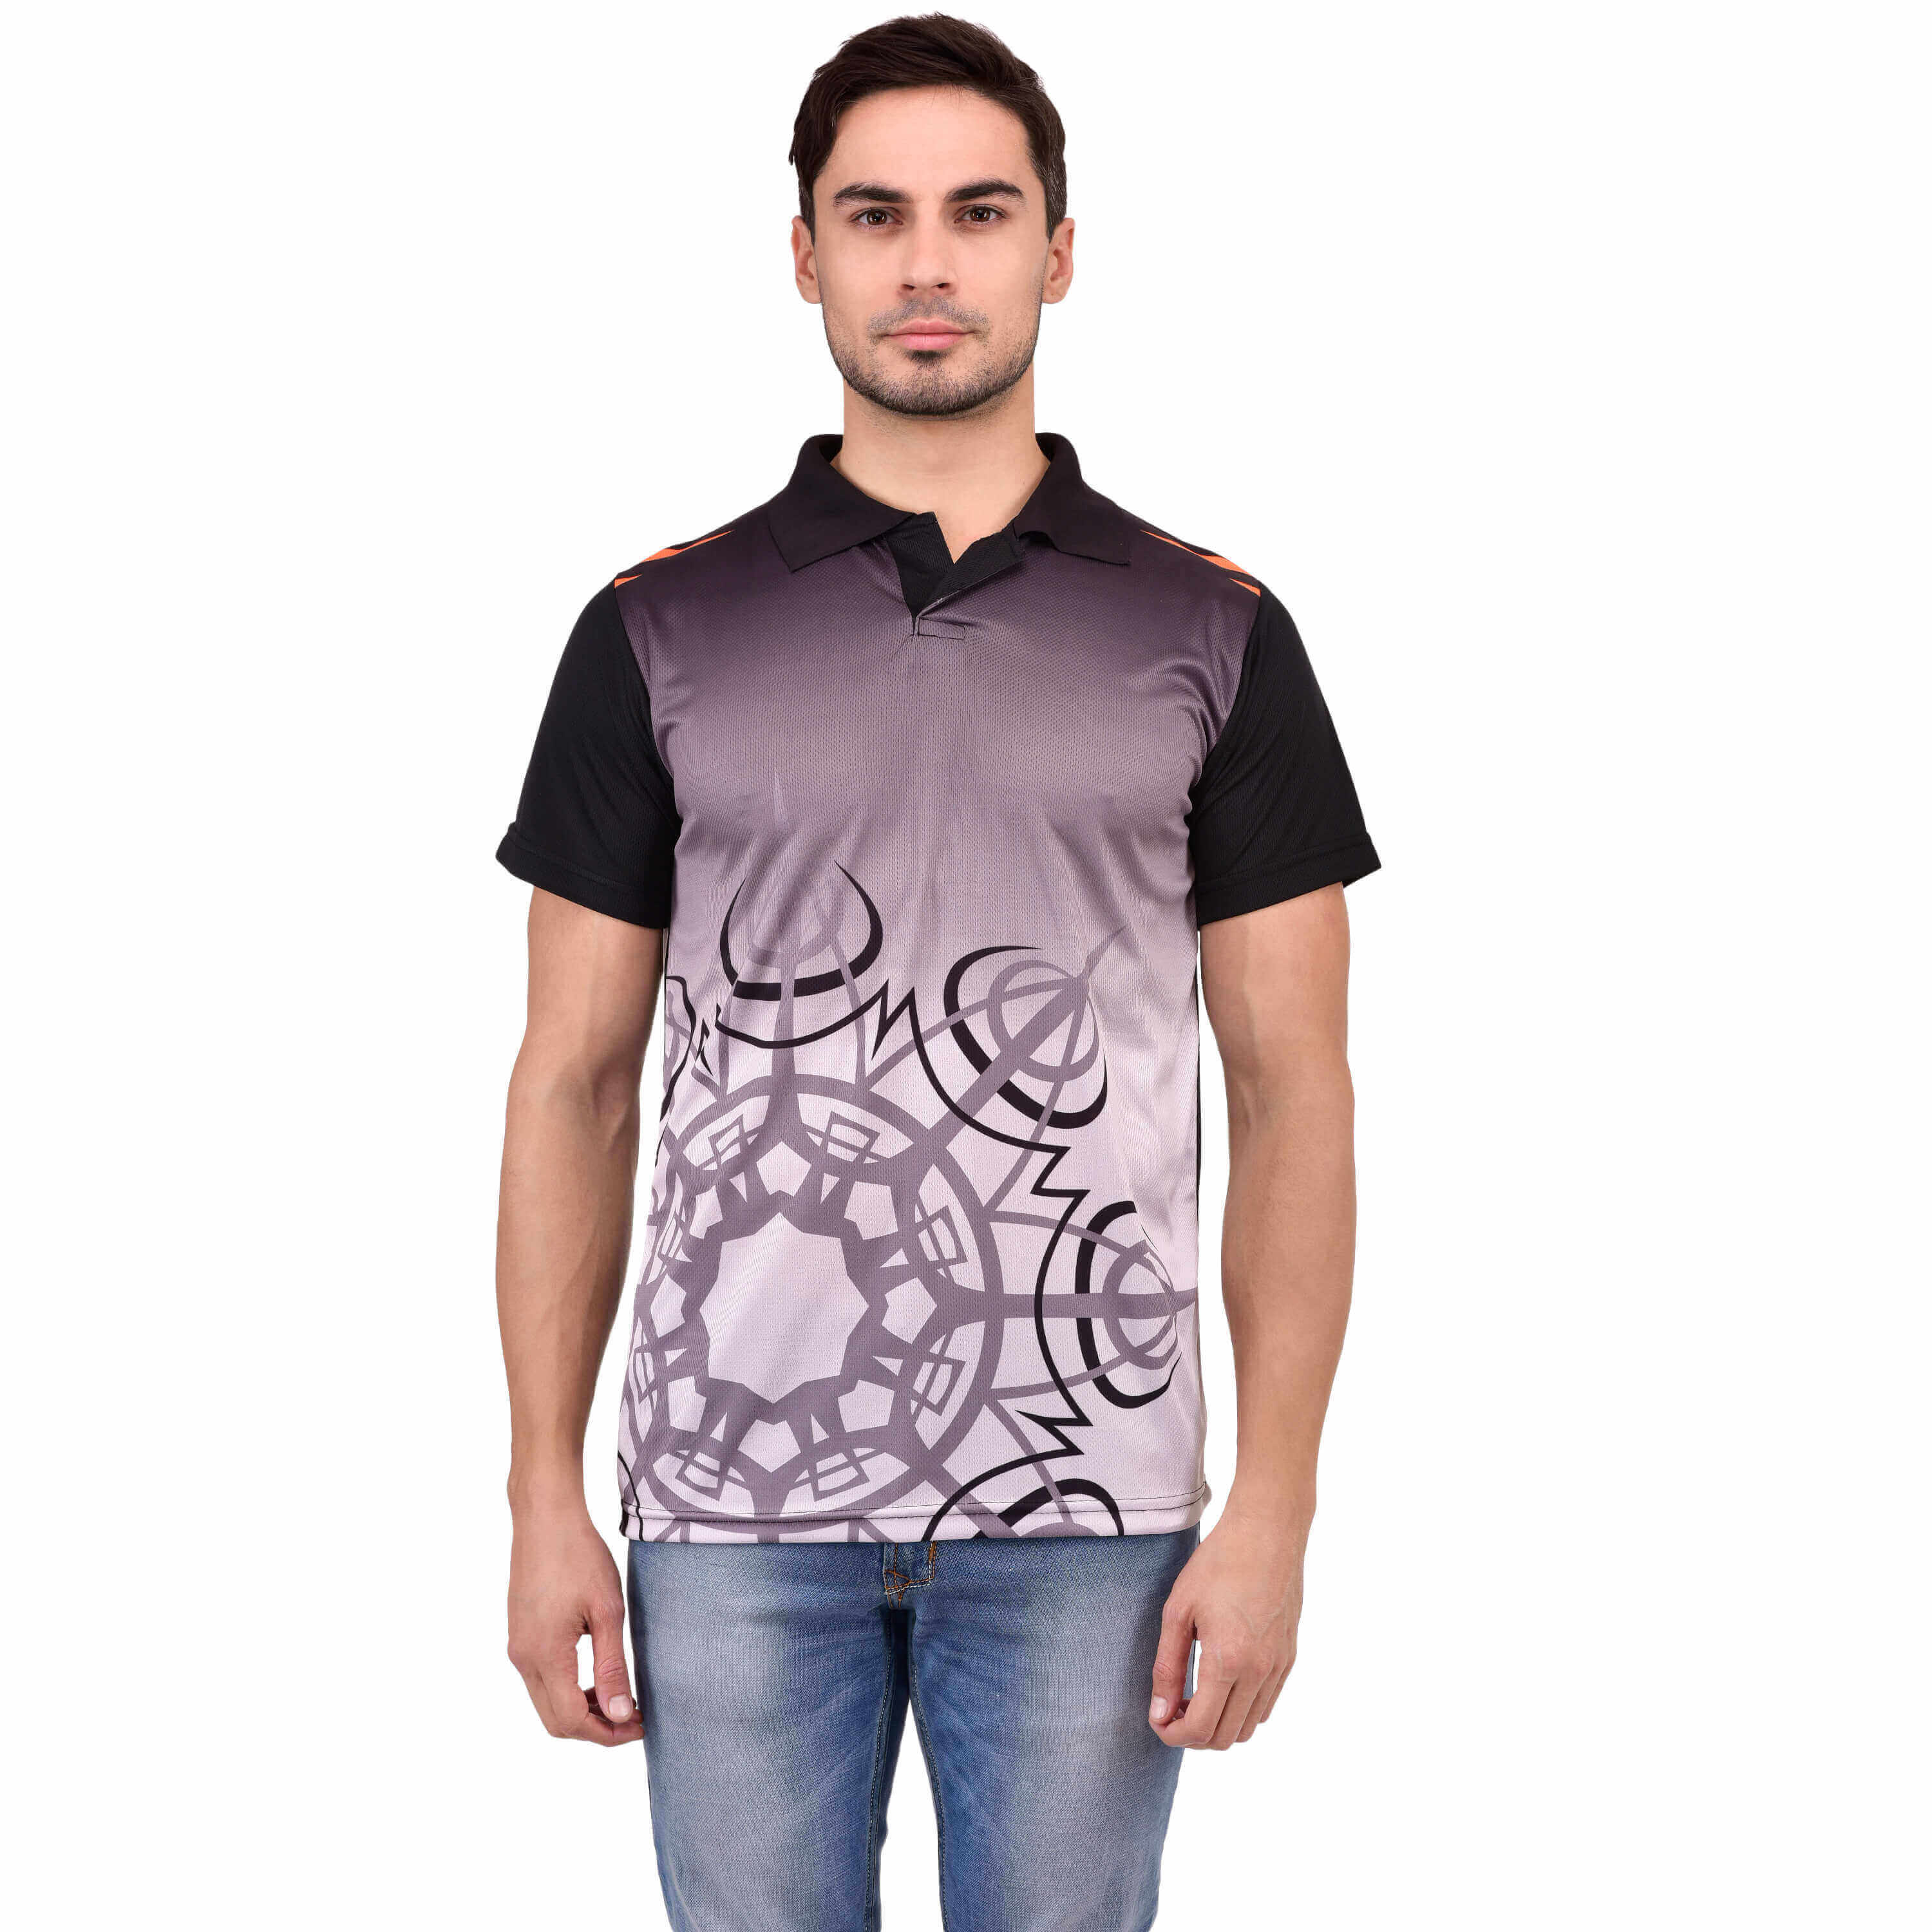 Cheap T Shirts Manufacturers in Ajmer